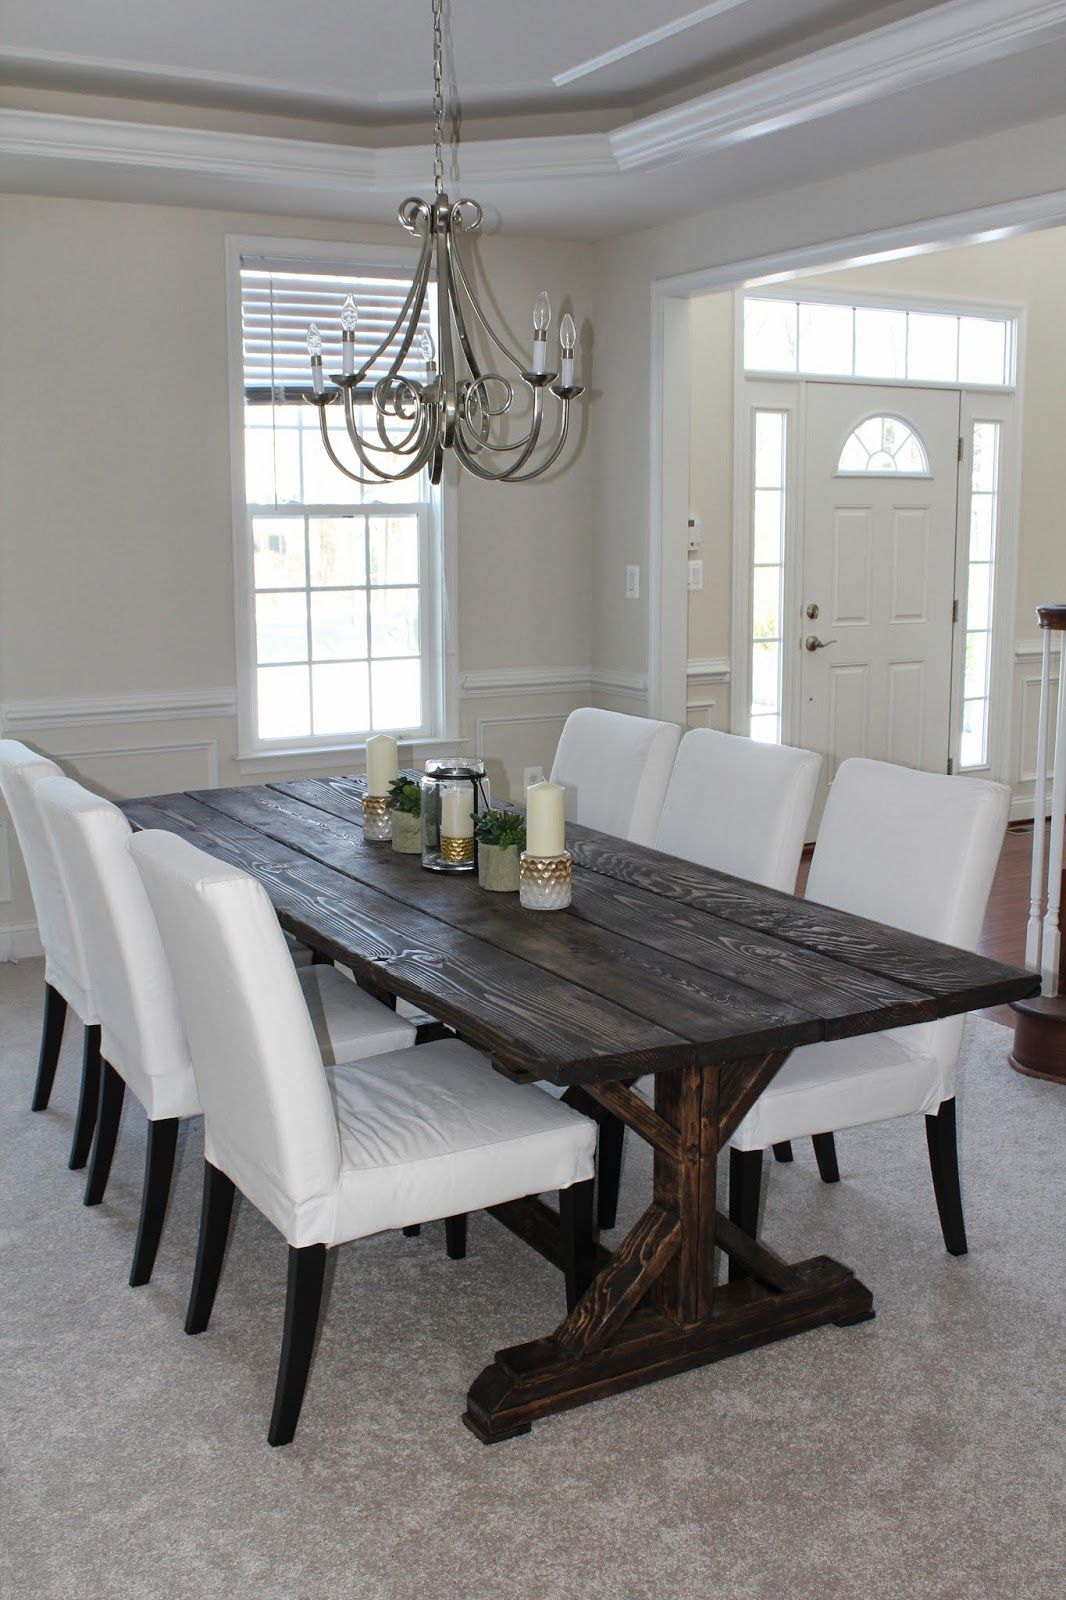 Could be a simple diy farm house table project for the